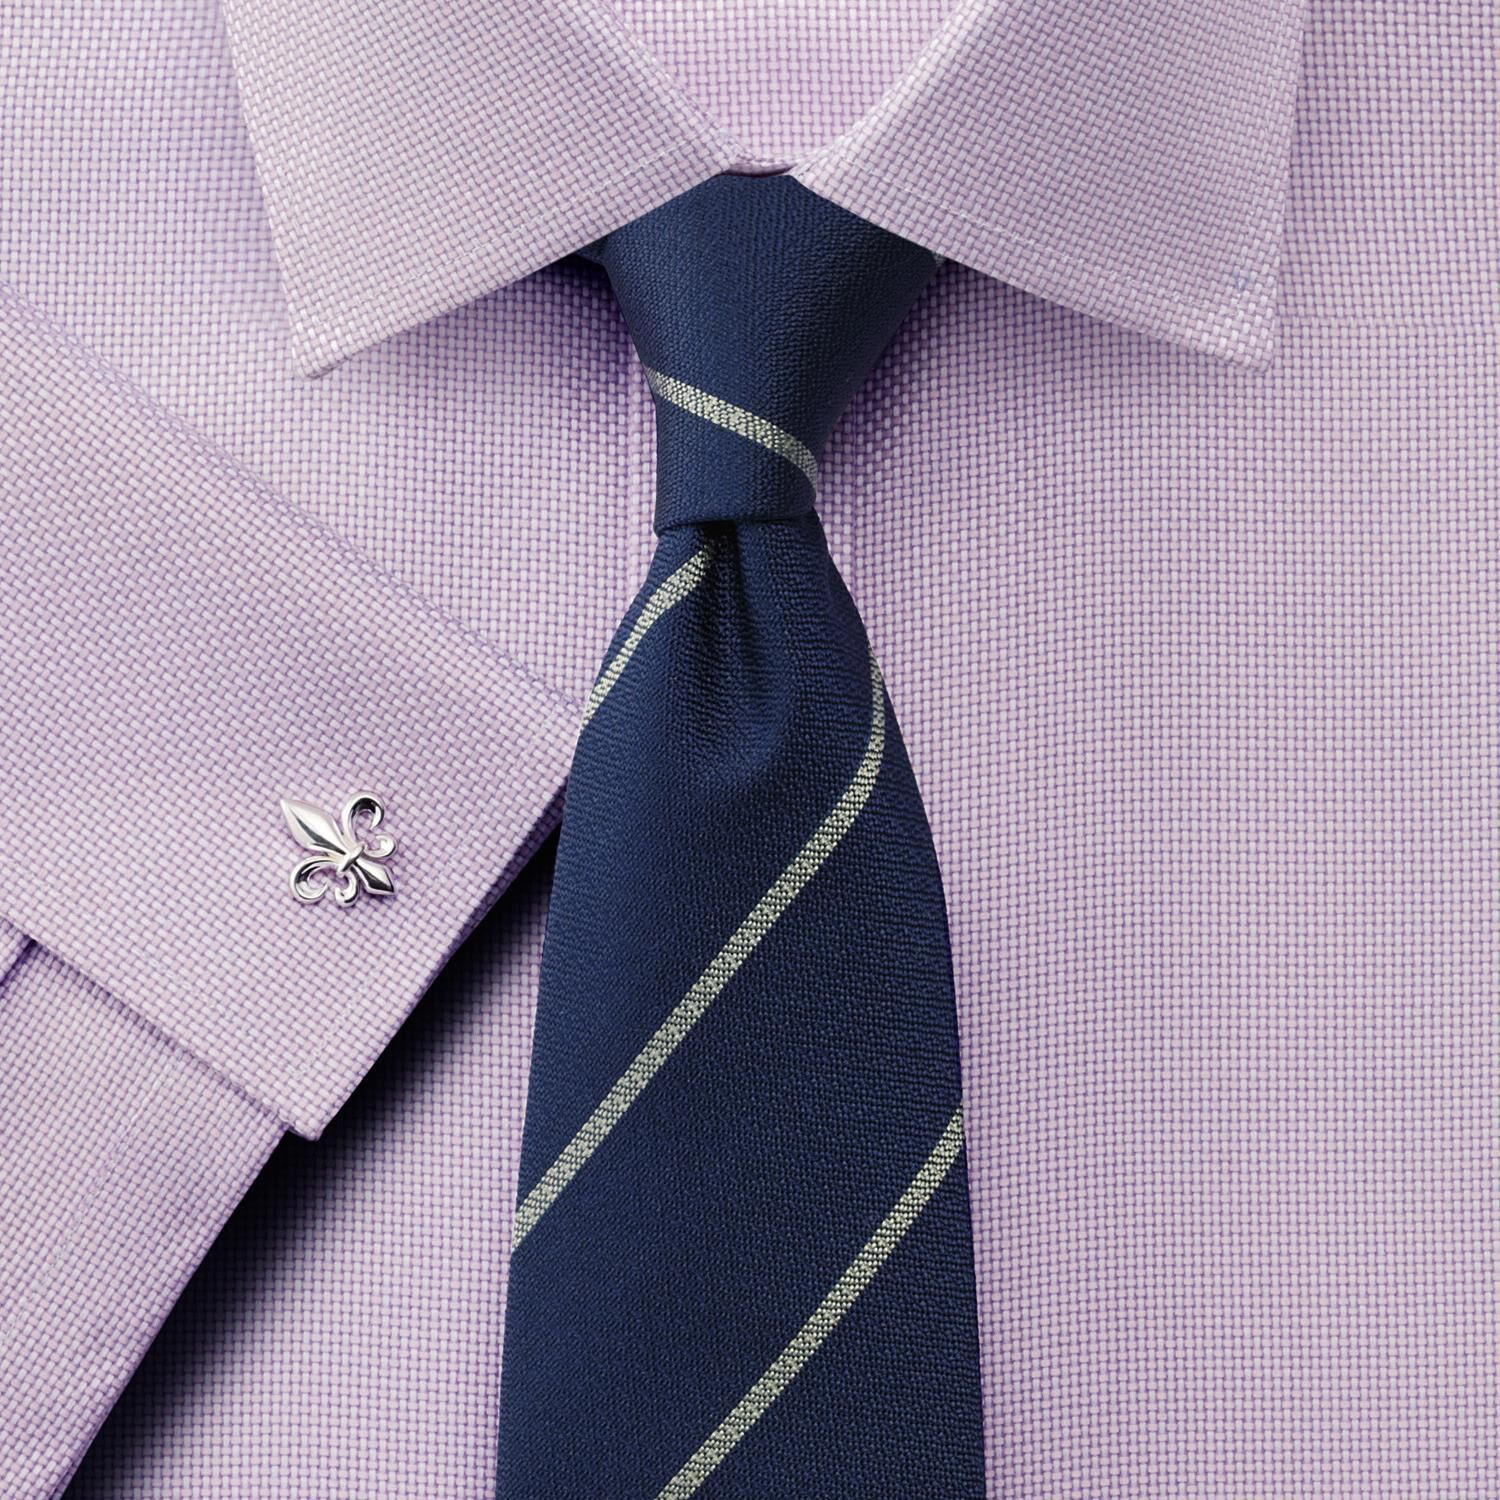 Slim Fit Non-Iron Buckingham Weave Lilac Cotton Formal Shirt Double Cuff Size 16/33 by Charles Tyrwh